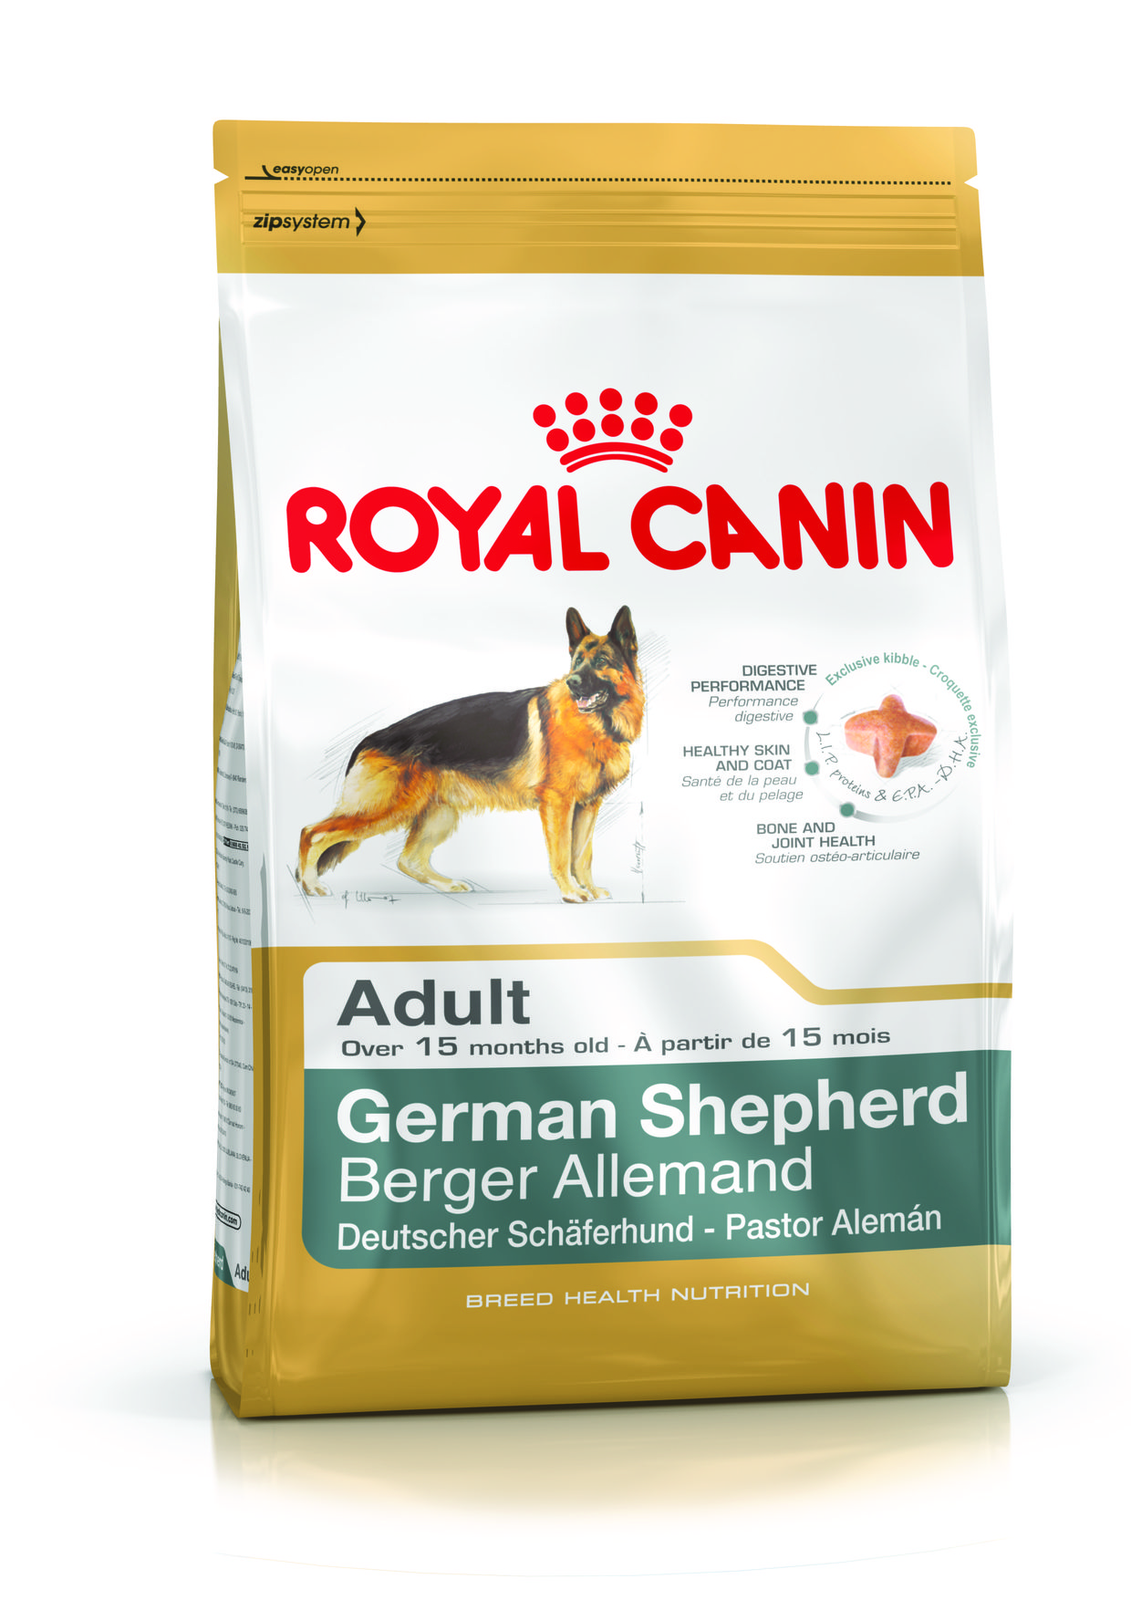 1492175940german-shepherd-adult.jpg